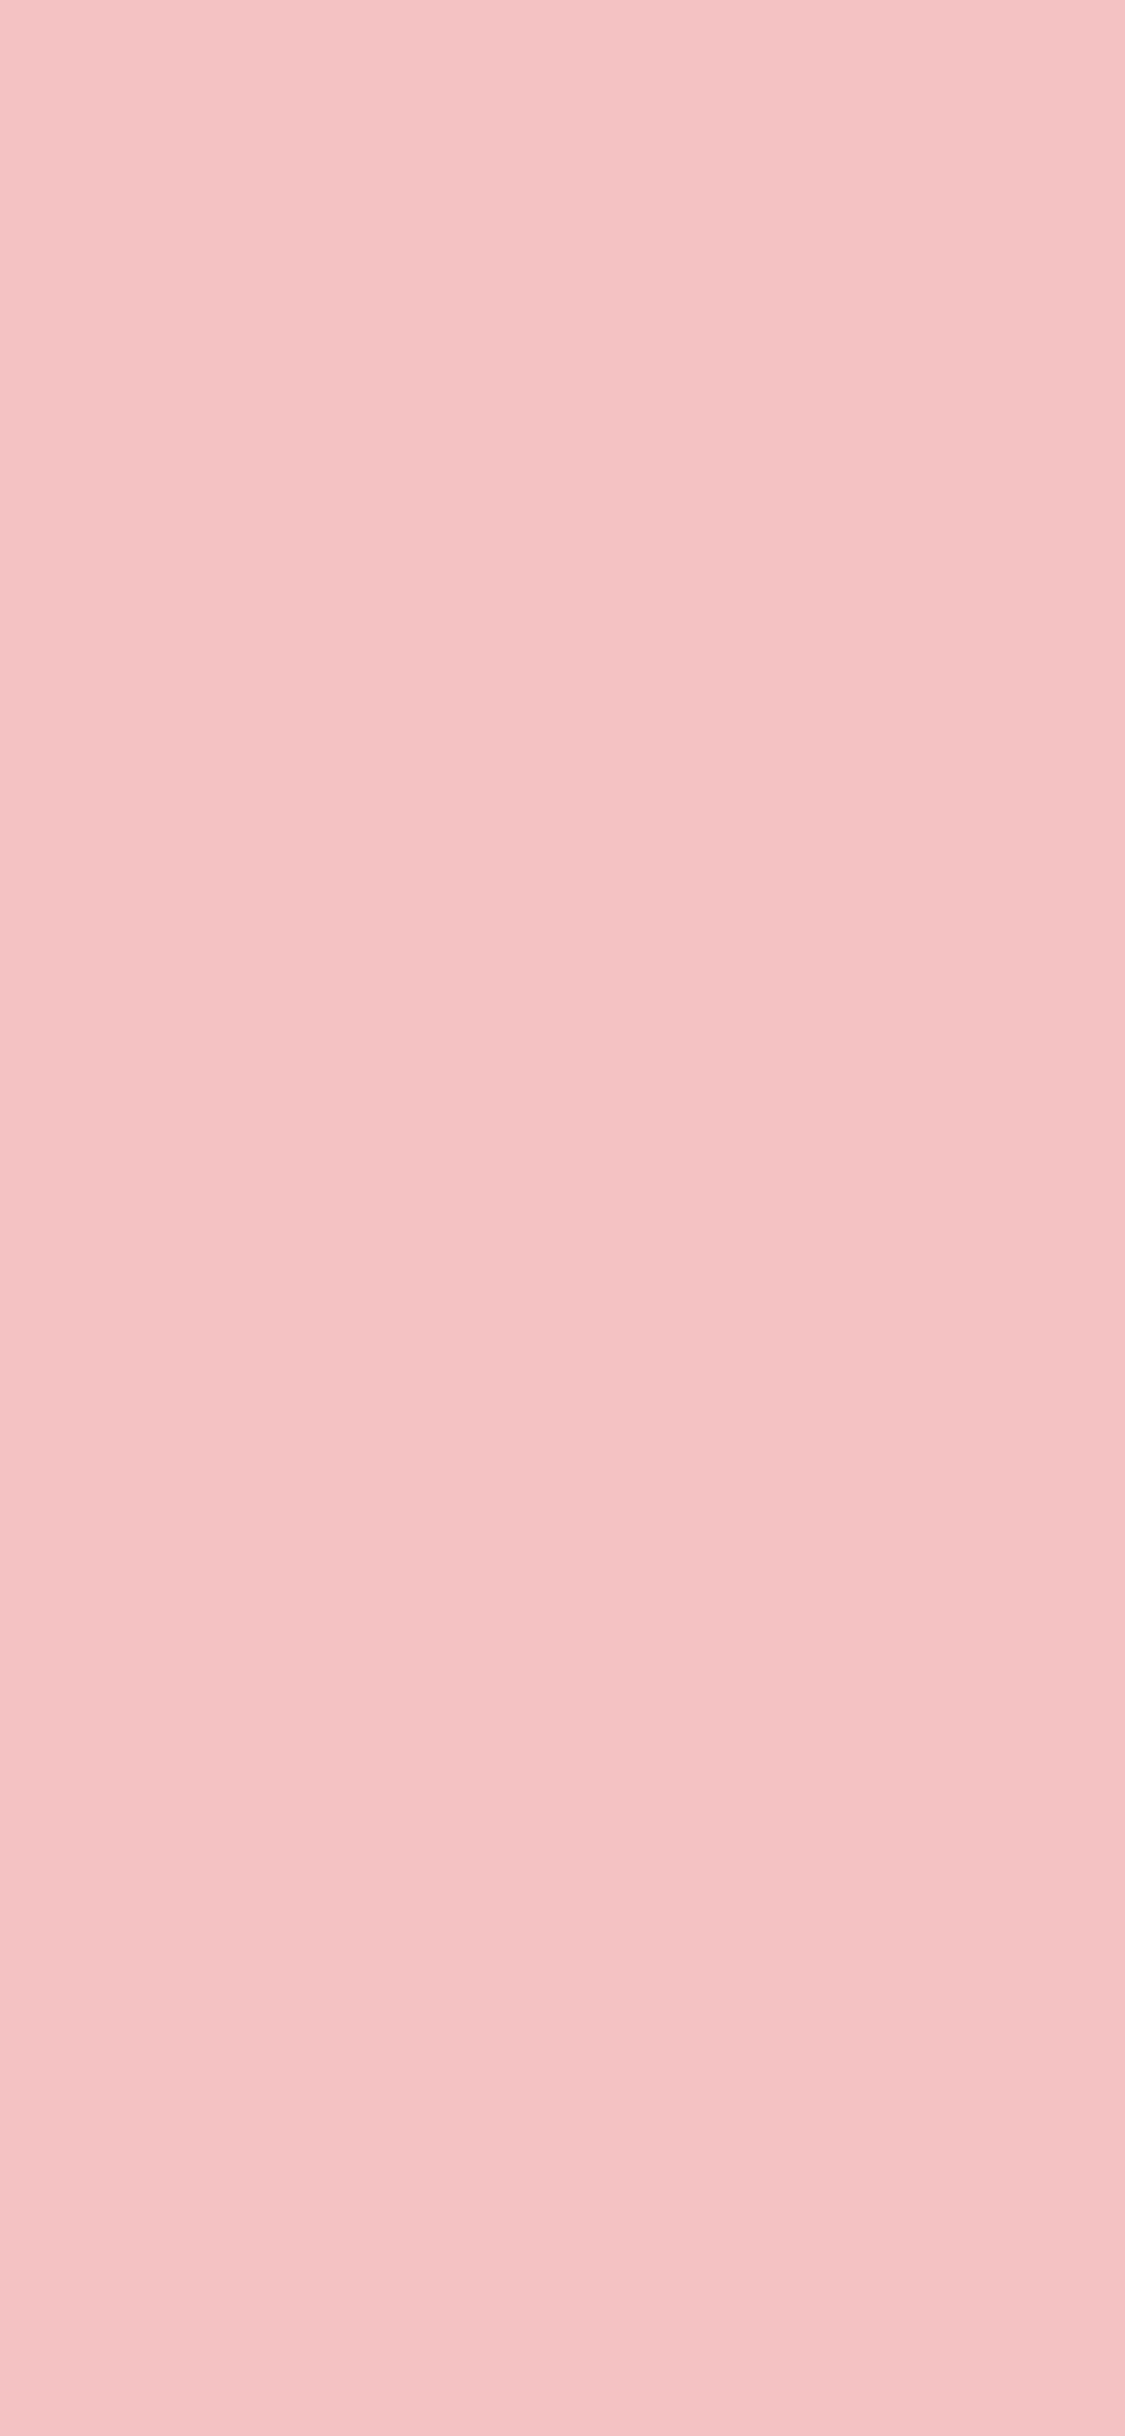 1125x2436 Baby Pink Solid Color Background